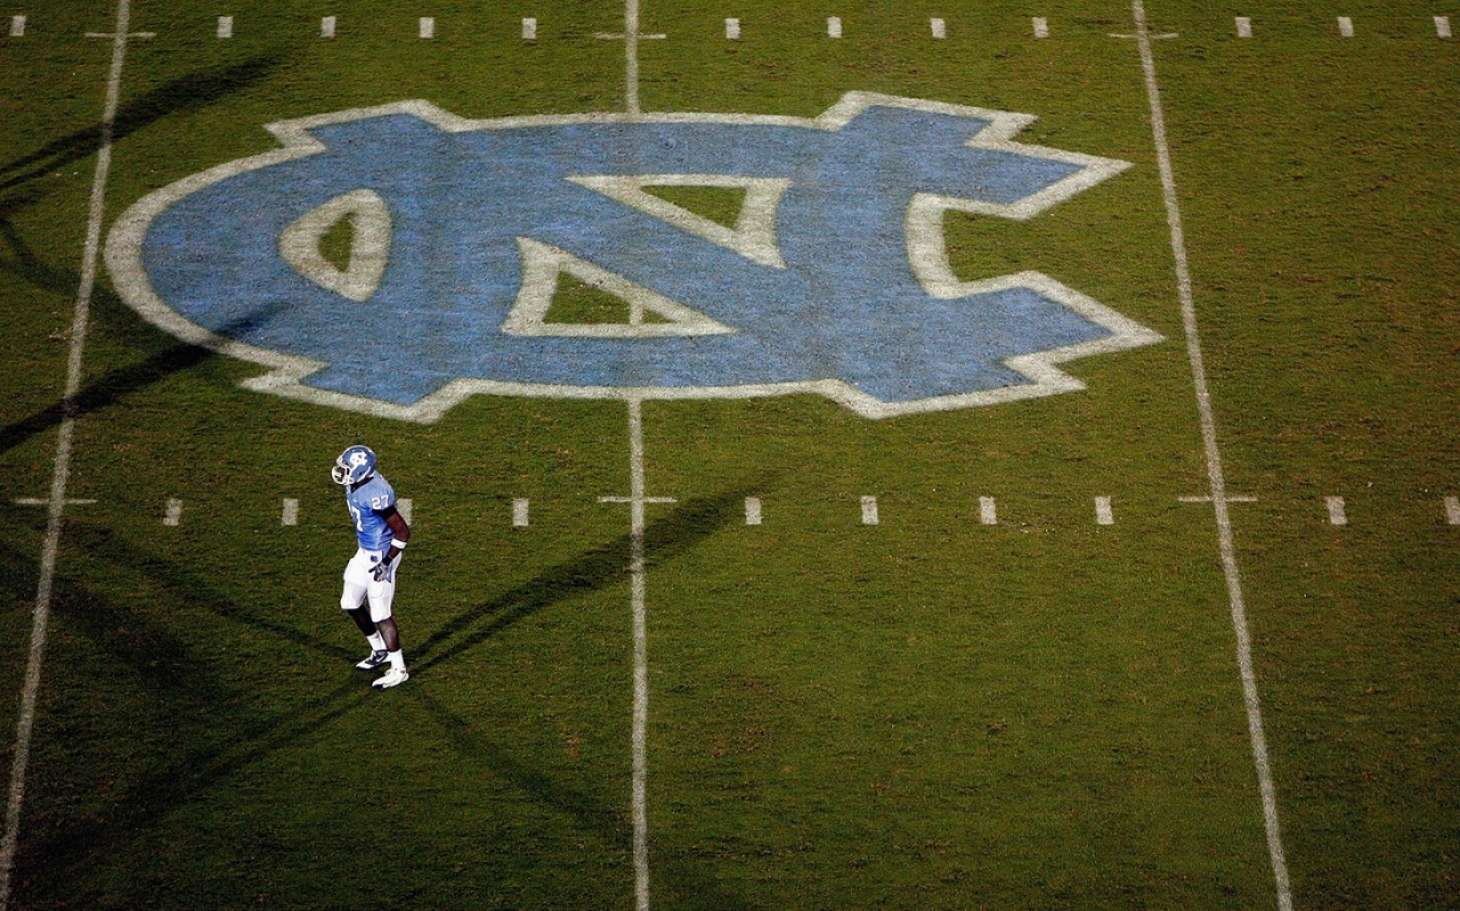 UNC Scandal Illuminates Collegiate Fumbles On Studentathlete - 12 american college sports venues to see before you die